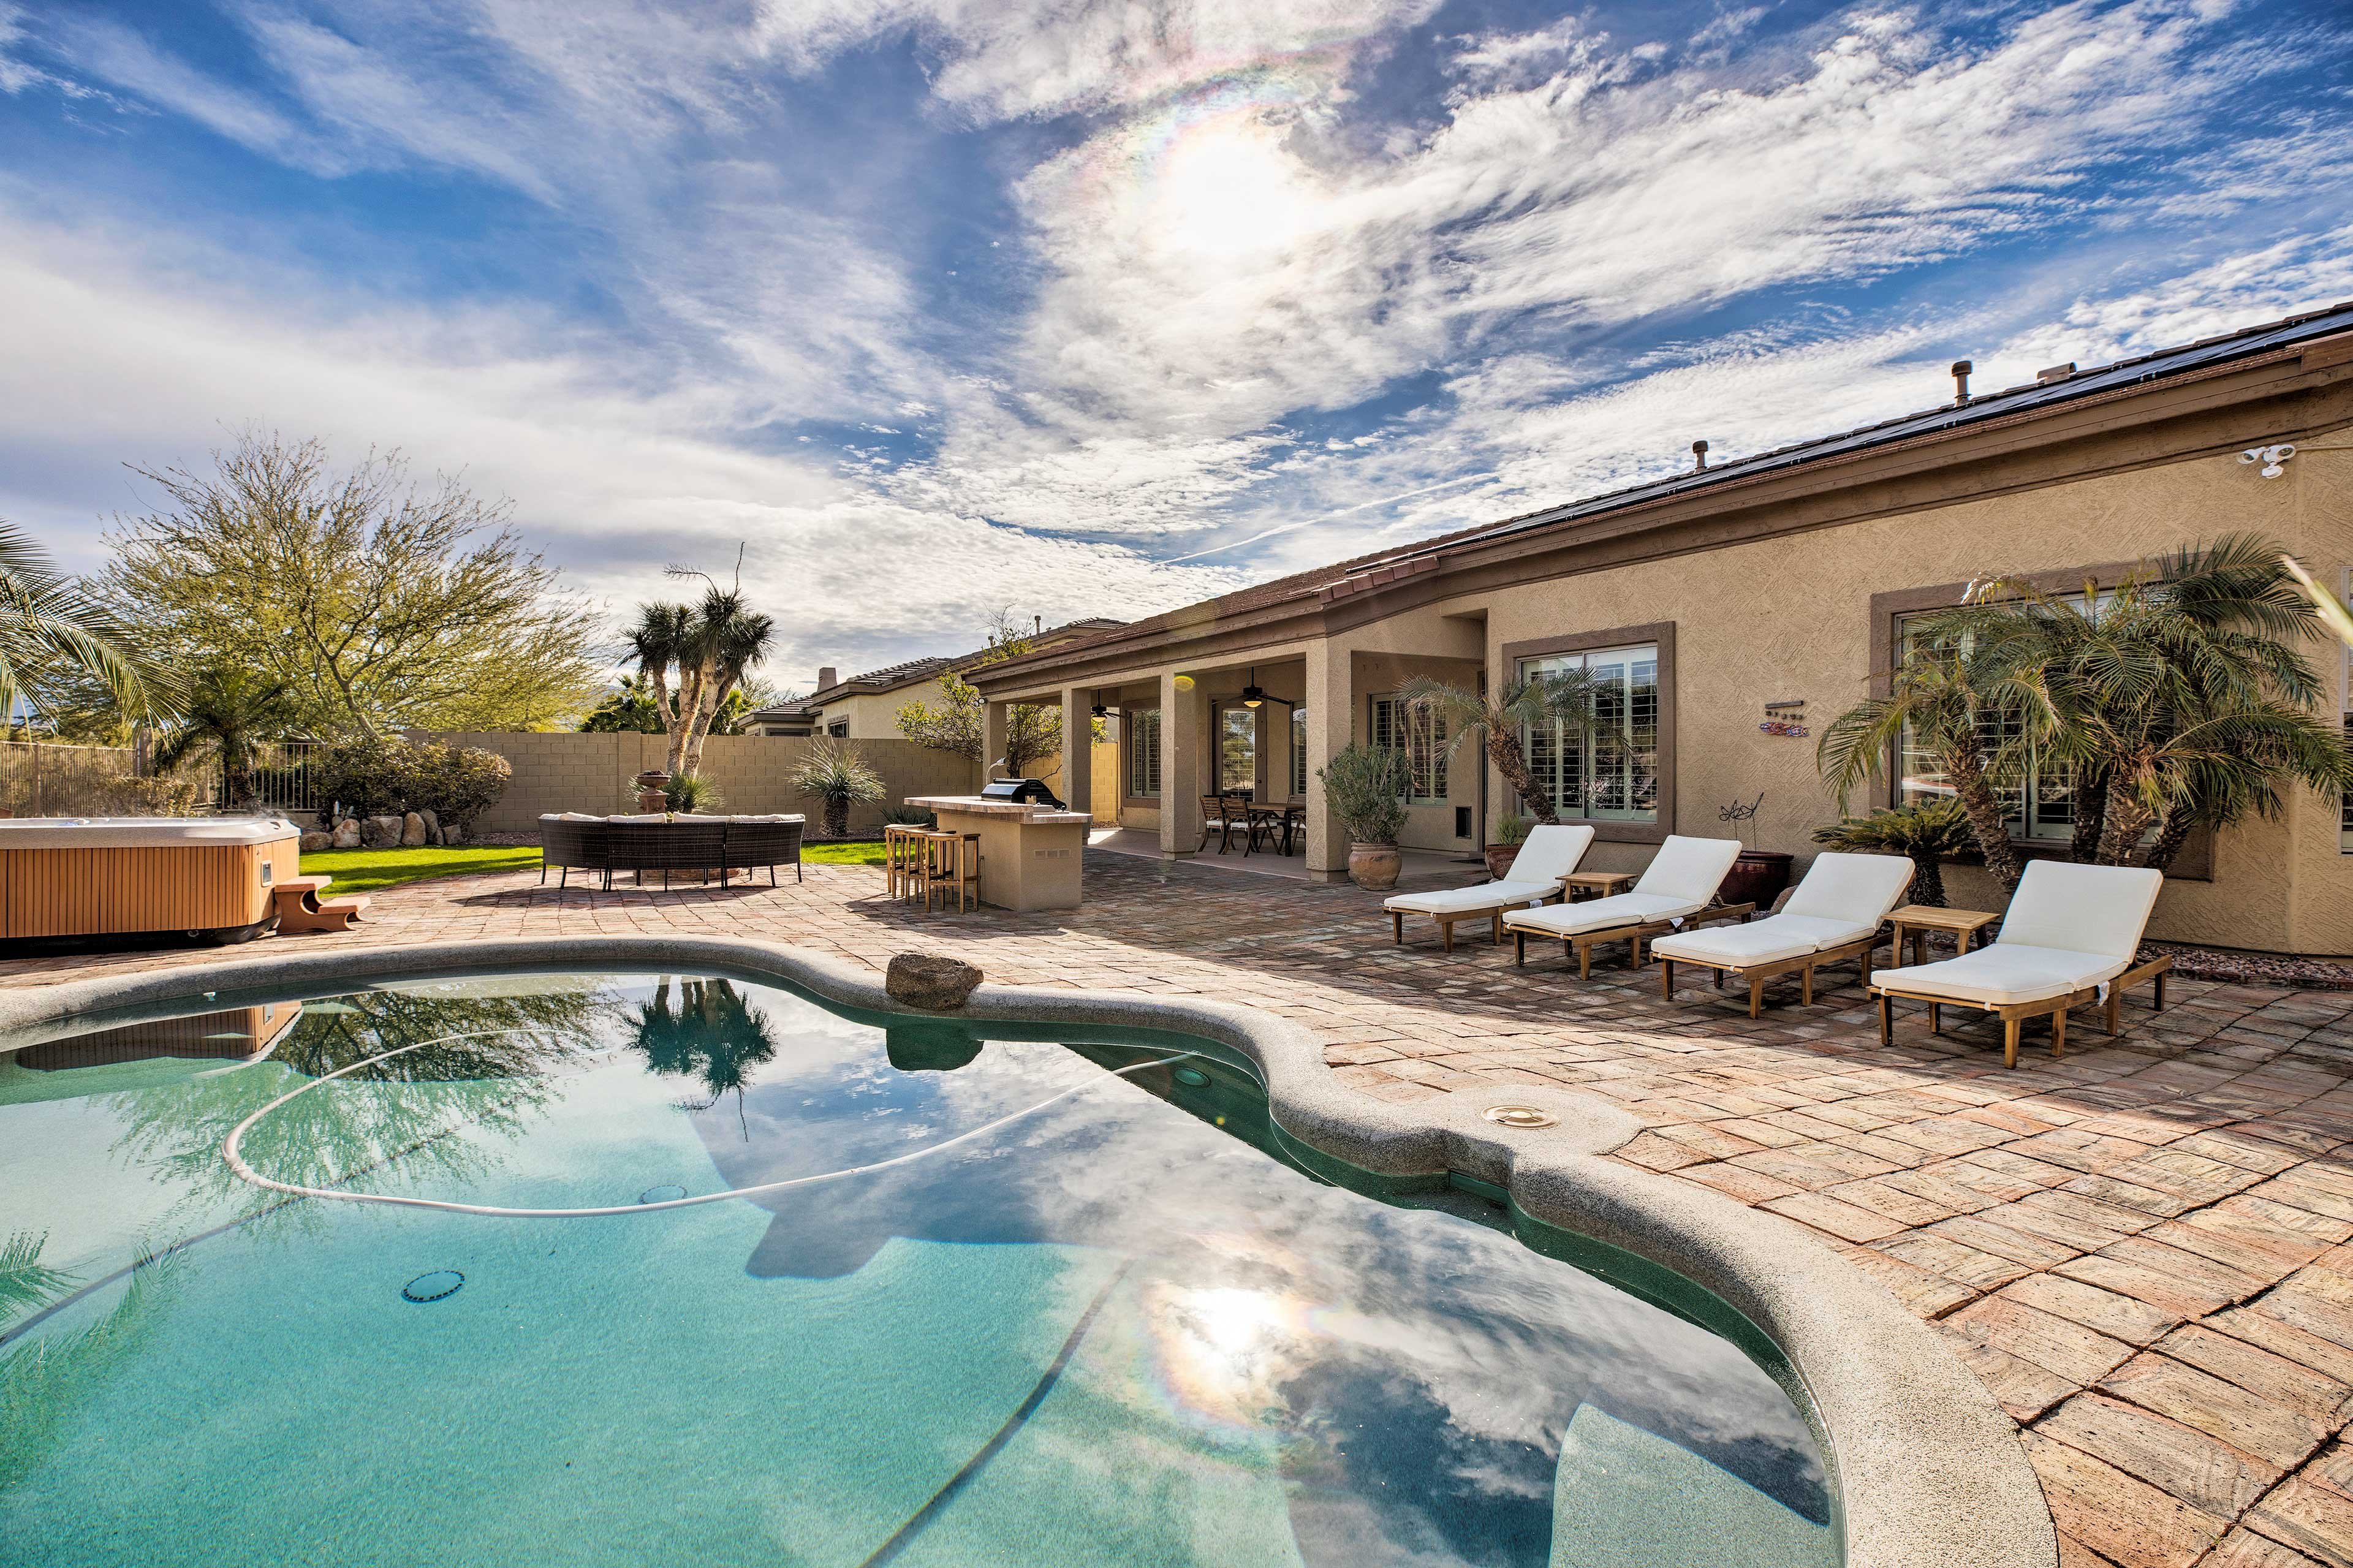 A stay at this luxe Goodyear home is a true investment in your well-being!